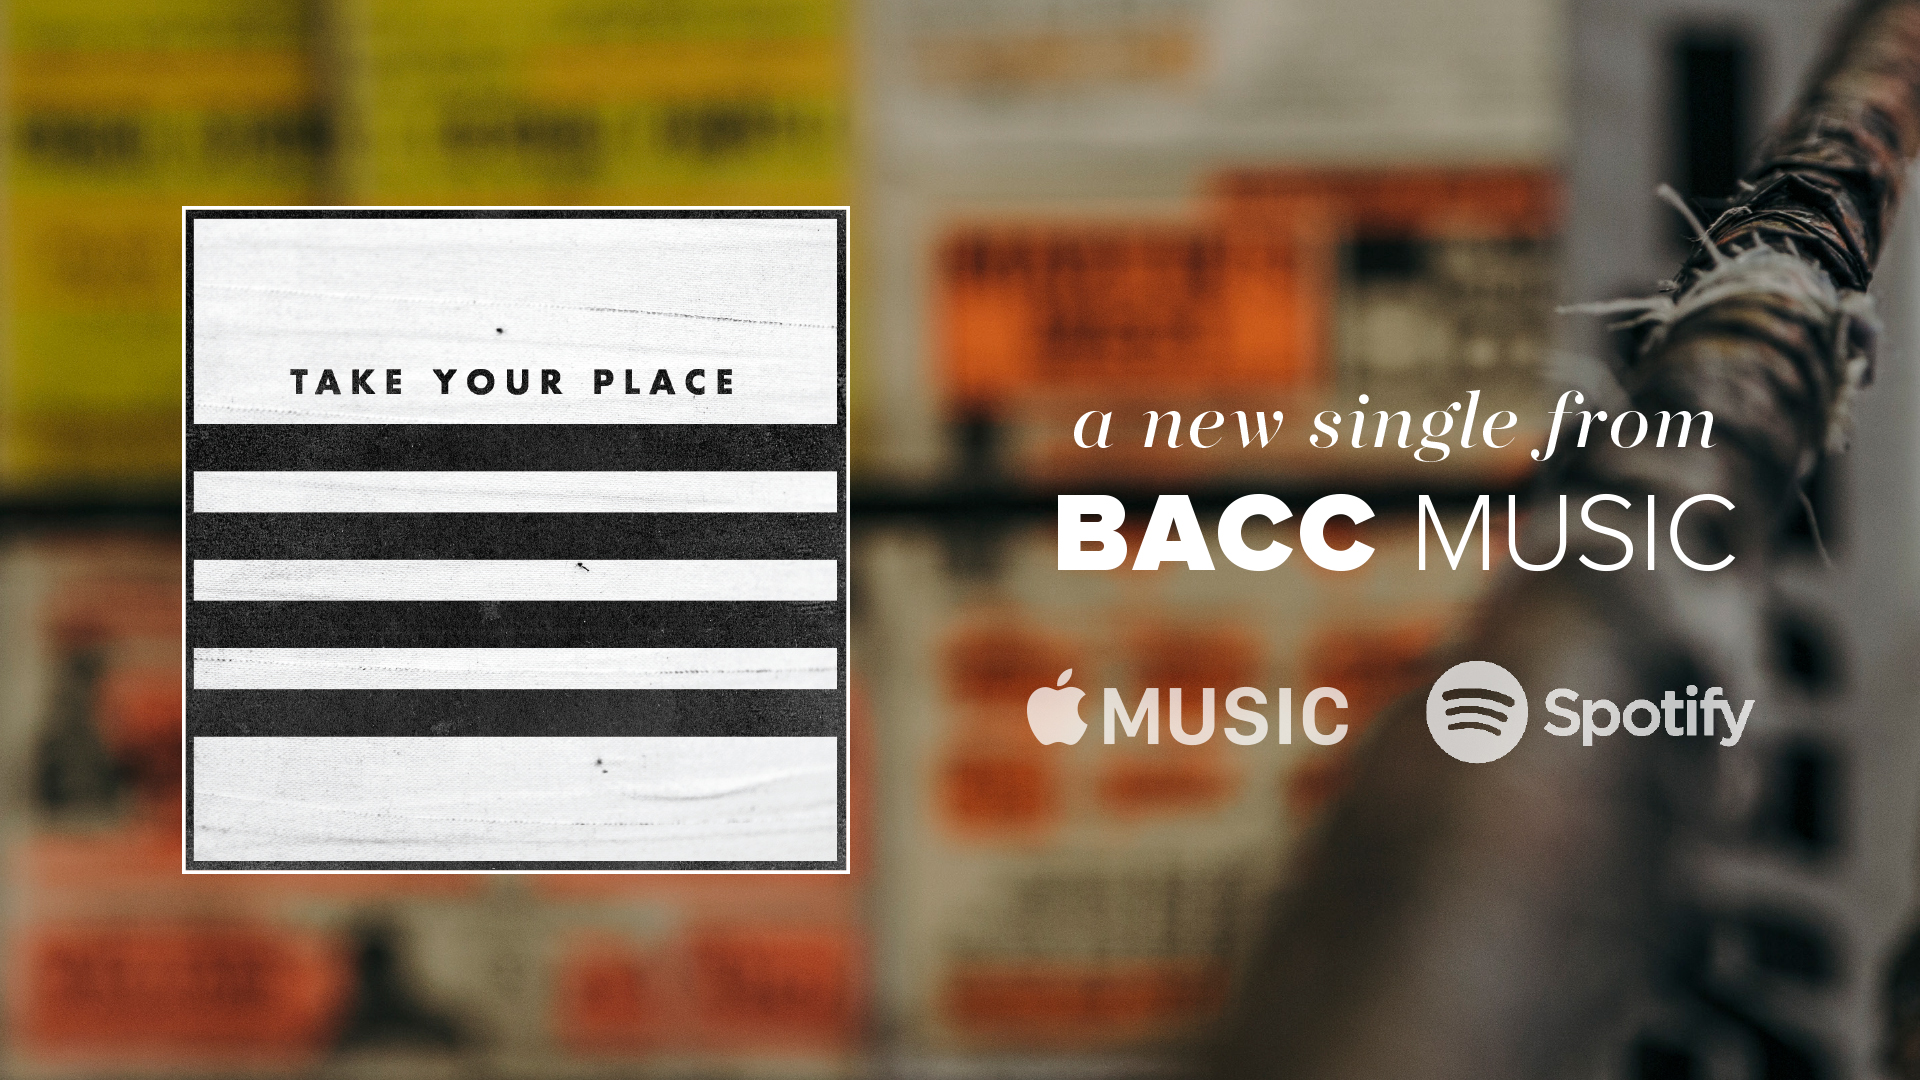 TAKE YOUR PLACE - A new single from BACC Music. Follow the link below to listen on Spotify.